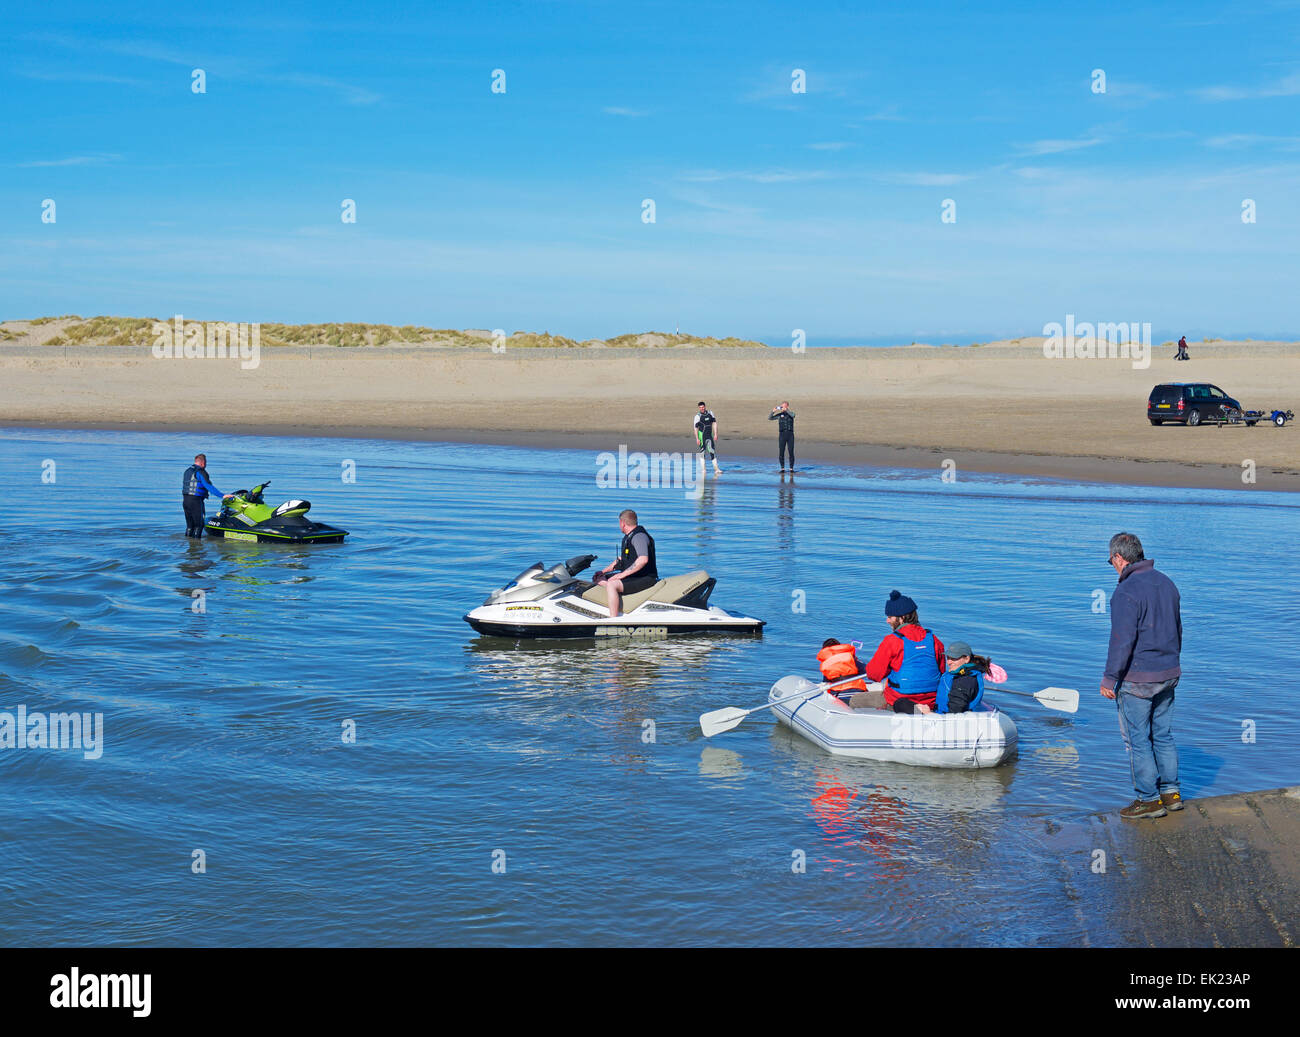 Jetskis and family in inflatable dinghy at Barmouth, Gwynedd, Wales UK - Stock Image